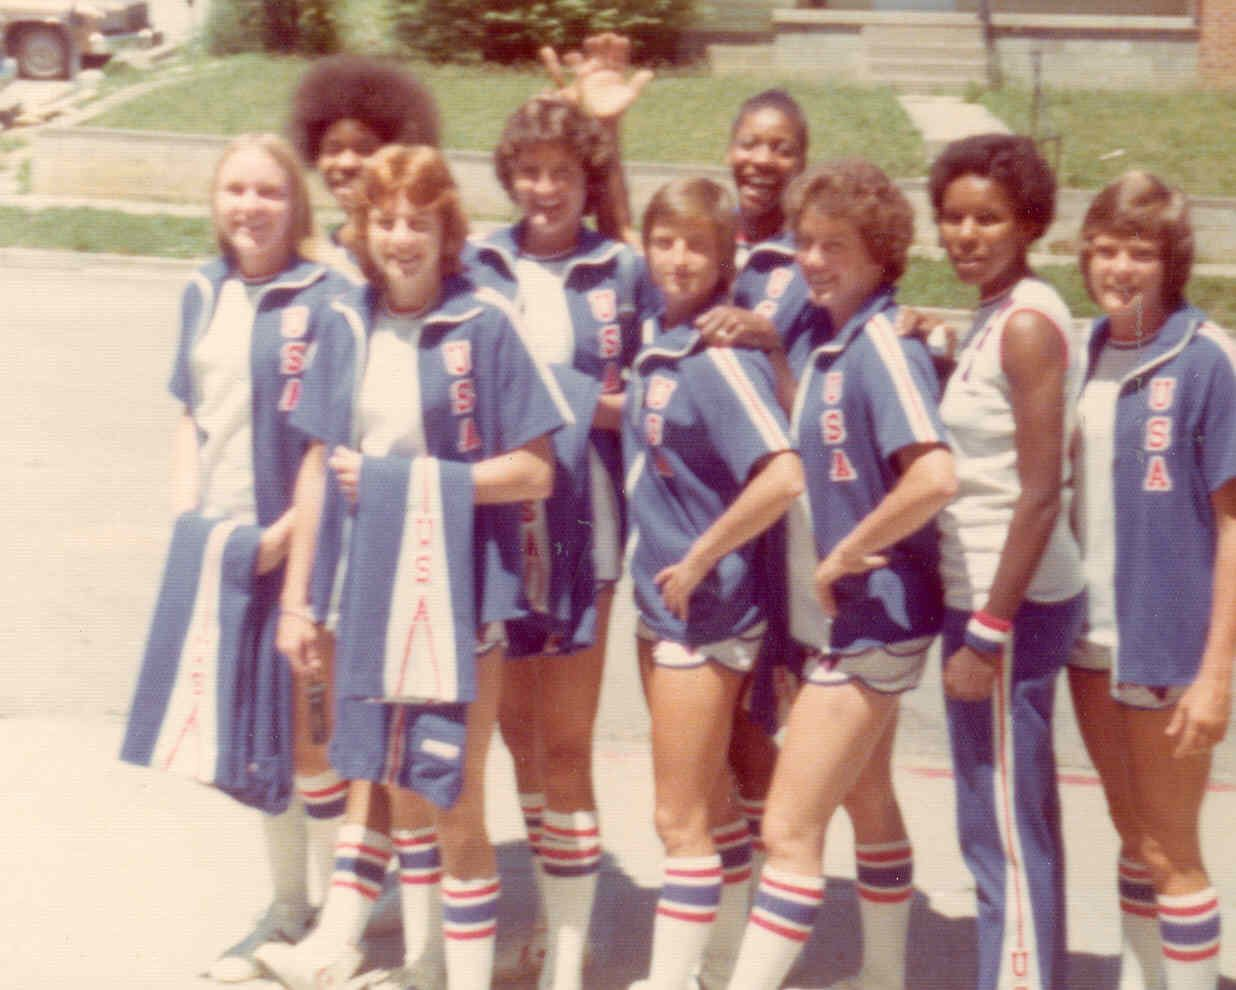 These players were rough and tough competitors, but off the court, they became a tight-knit unit.